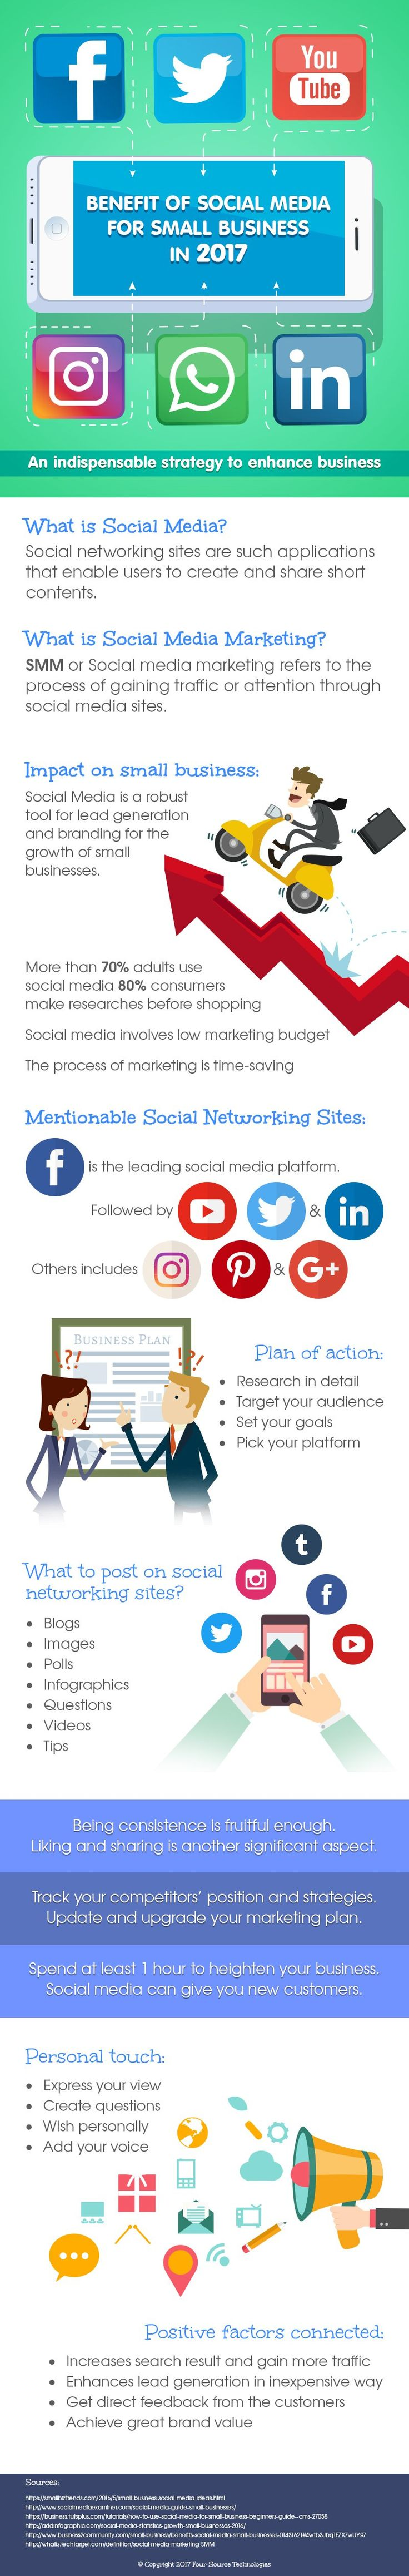 Unleash The Advantageous Aspects of Social Media for The Betterment of Small Businesses